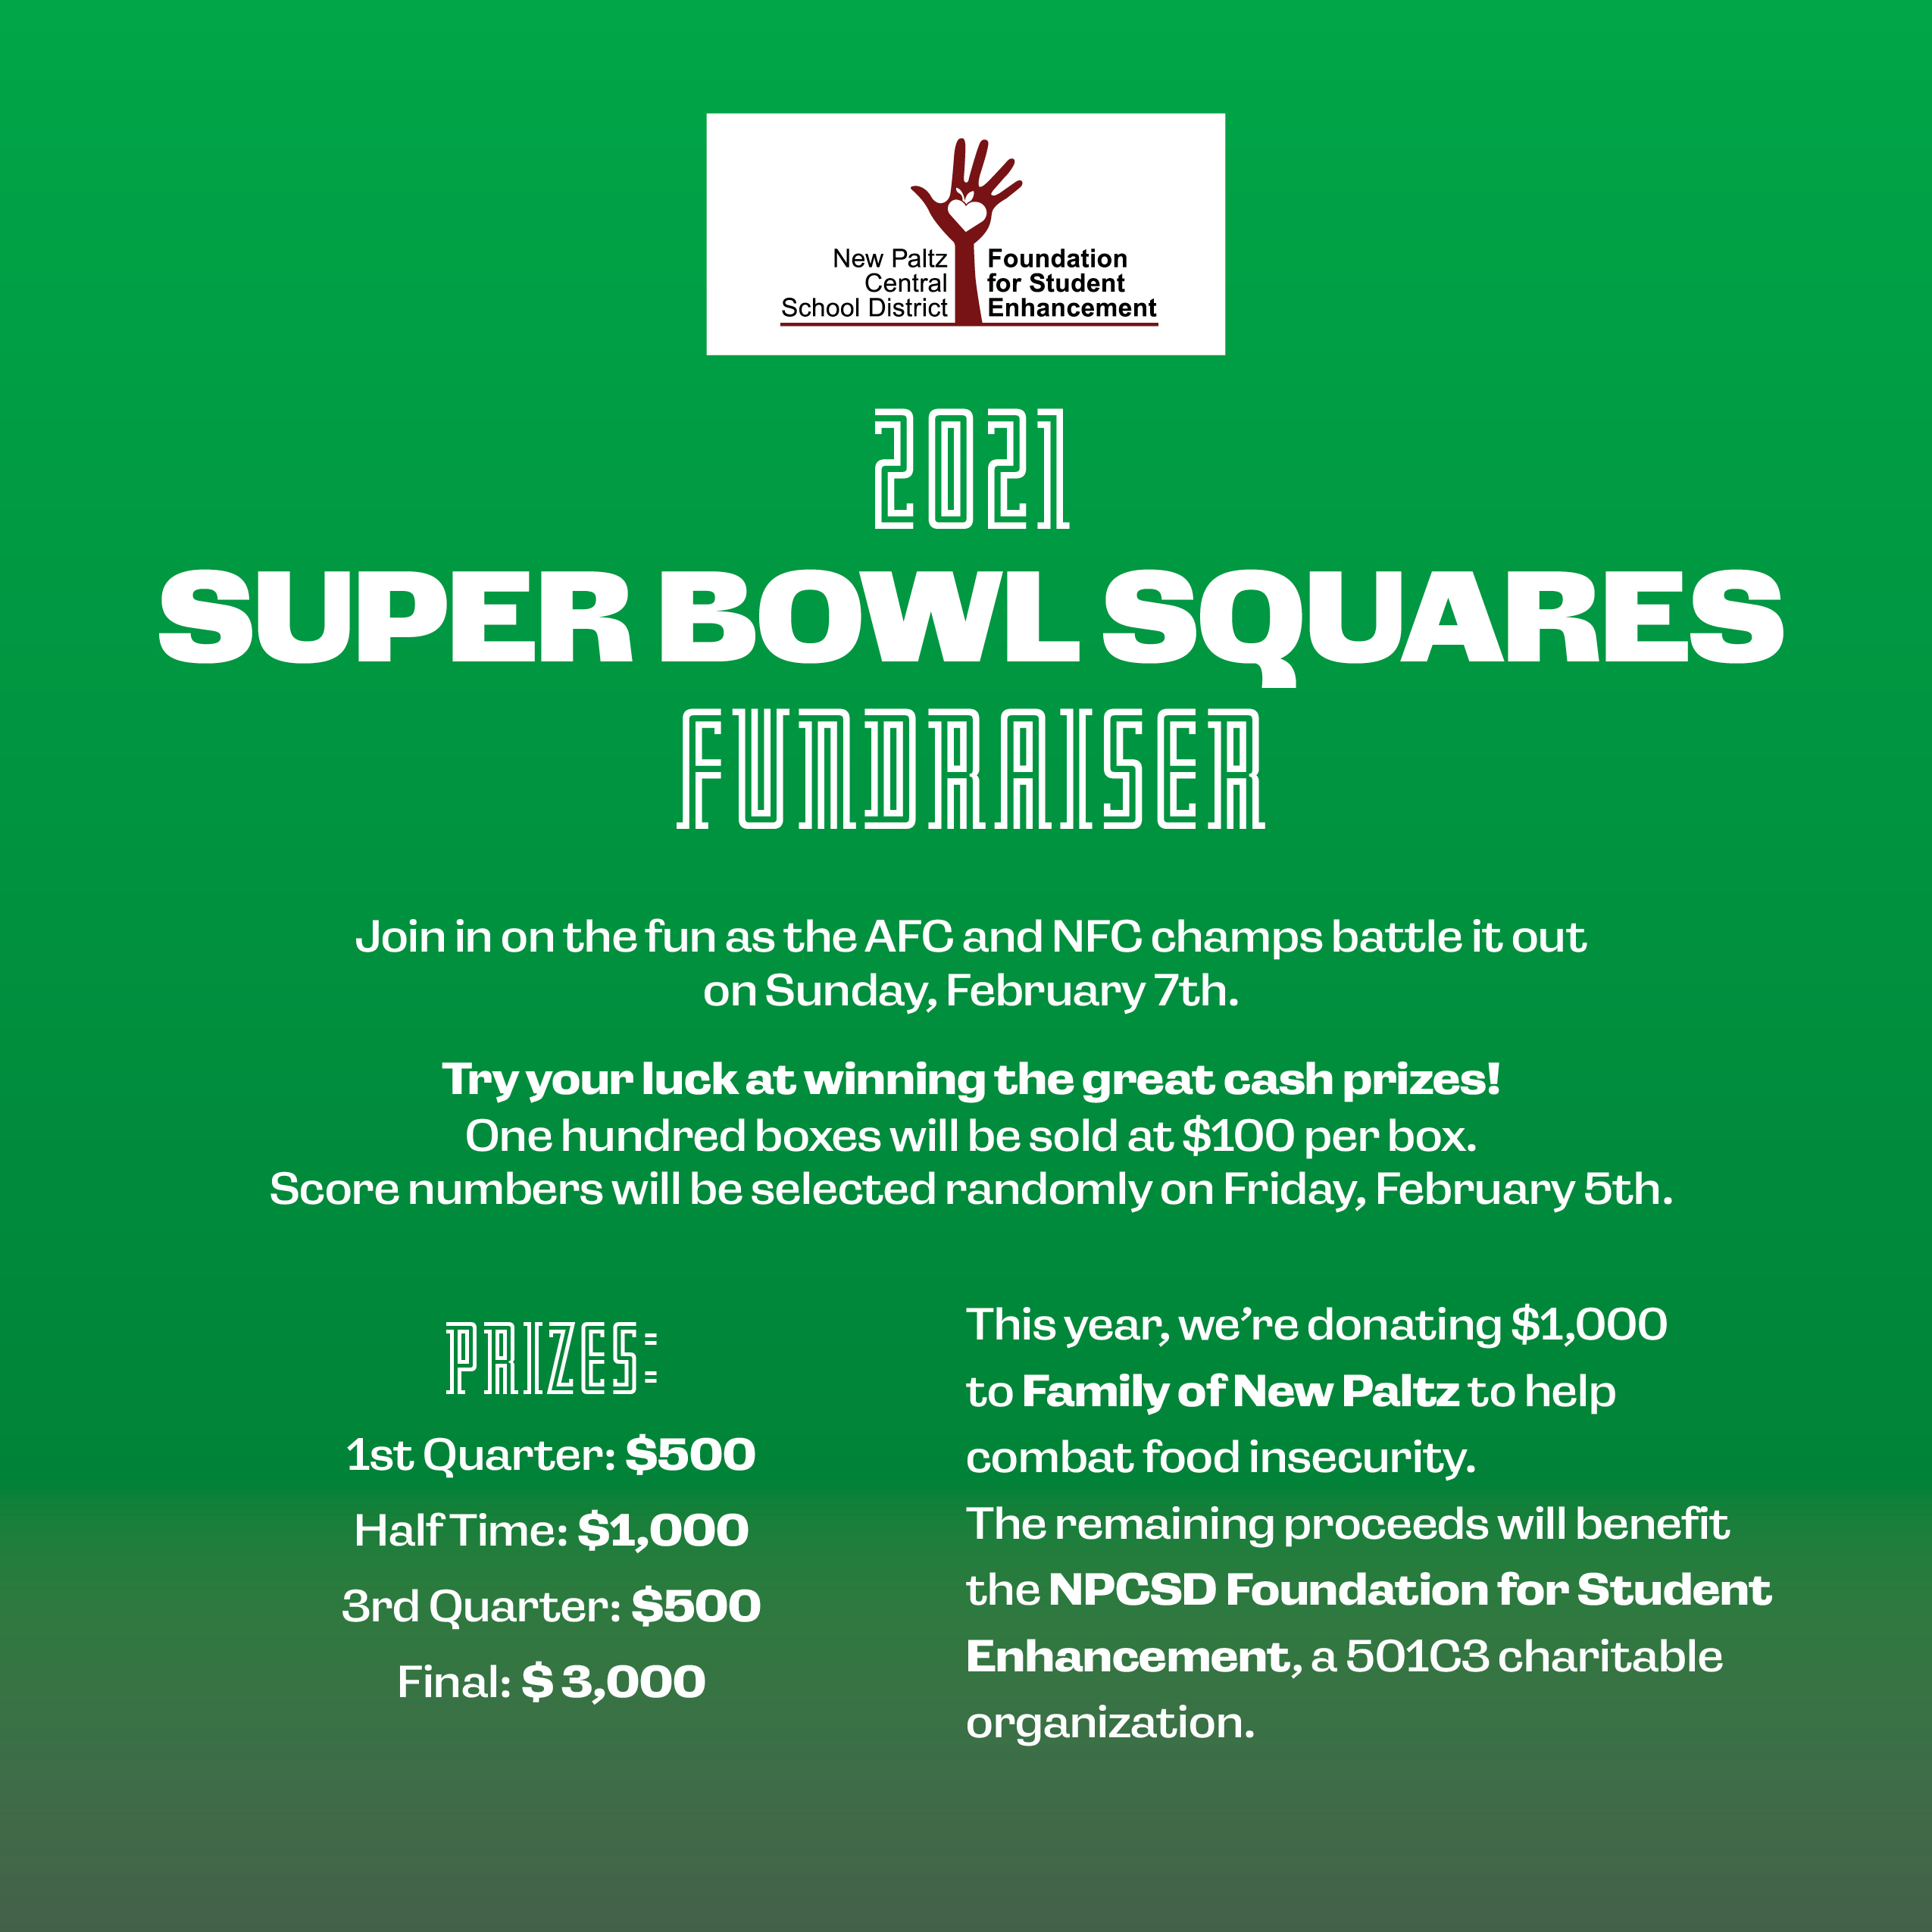 NPCSDFSE_Superbowl2021_Square